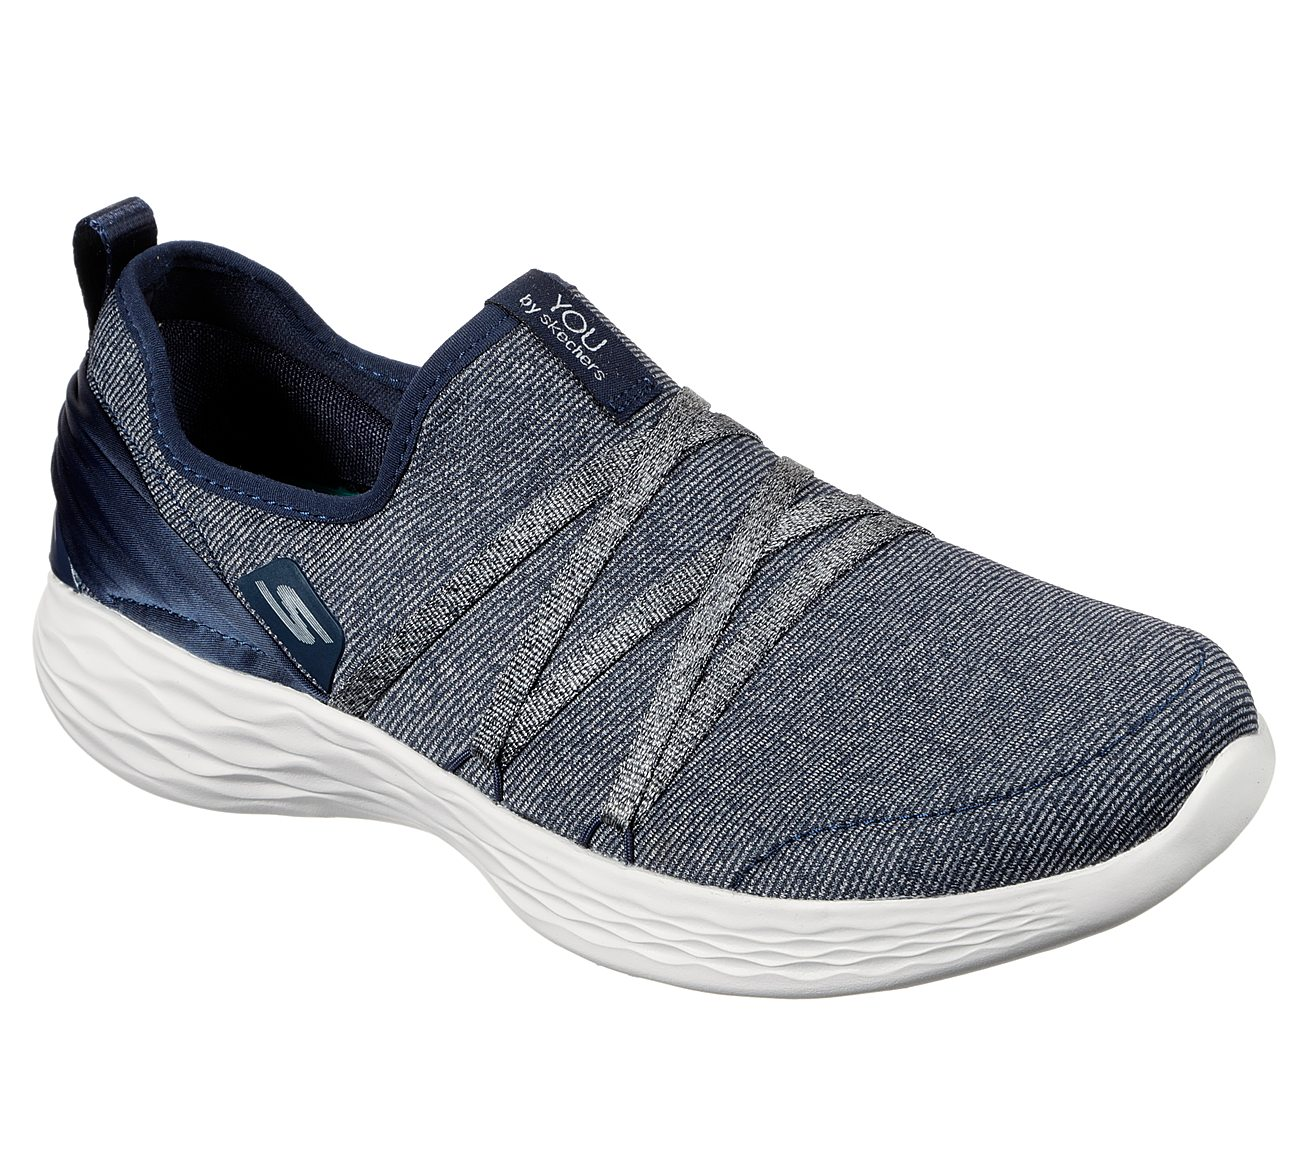 skechers shoes you